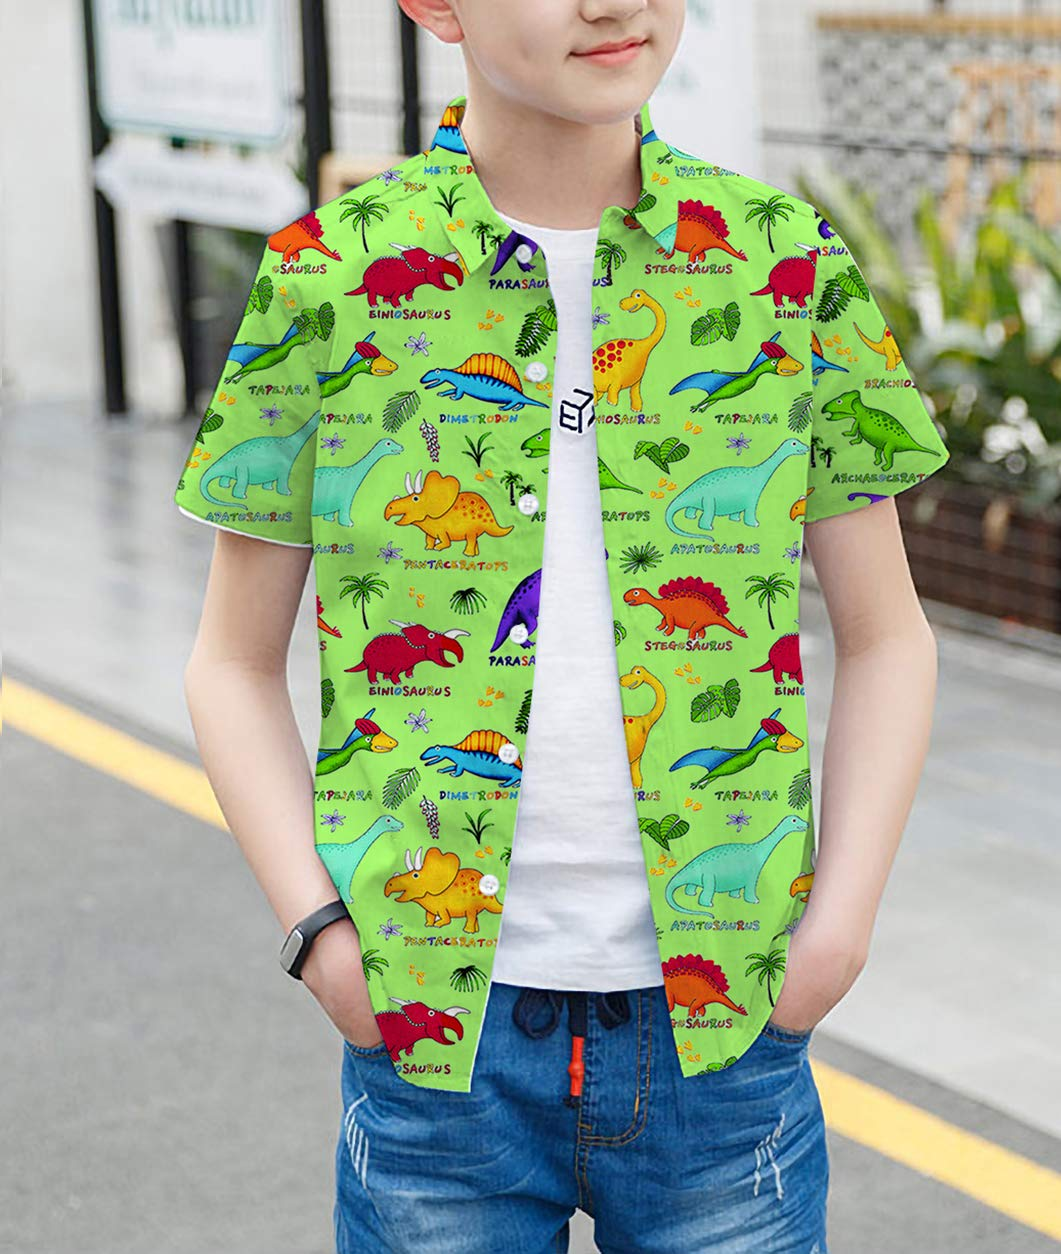 Goodstoworld Boys Button Down Shirts Kids Casual Short Sleeve Cotton Button Up Cool Dinosaur Print Tees Tops Blouse 5-6T by Goodstoworld (Image #2)